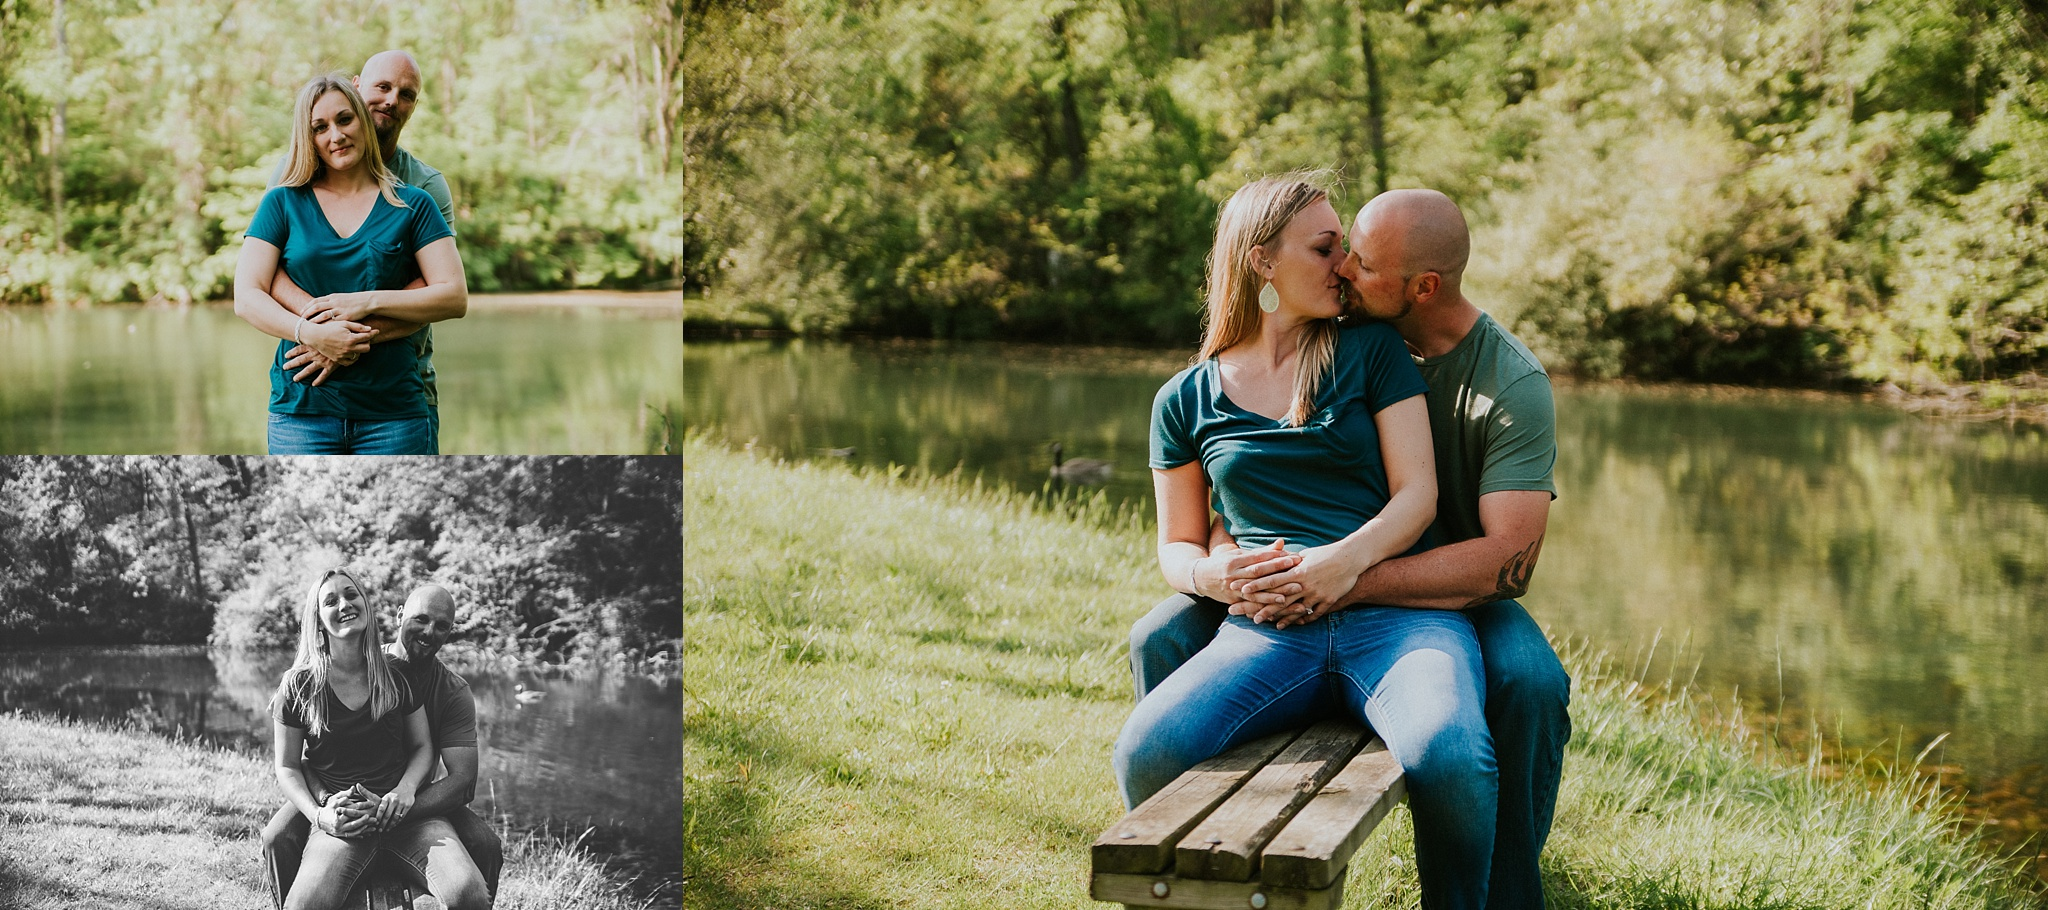 Shelby Chari Photography | South Bend Portrait Photographer | Engagement Session